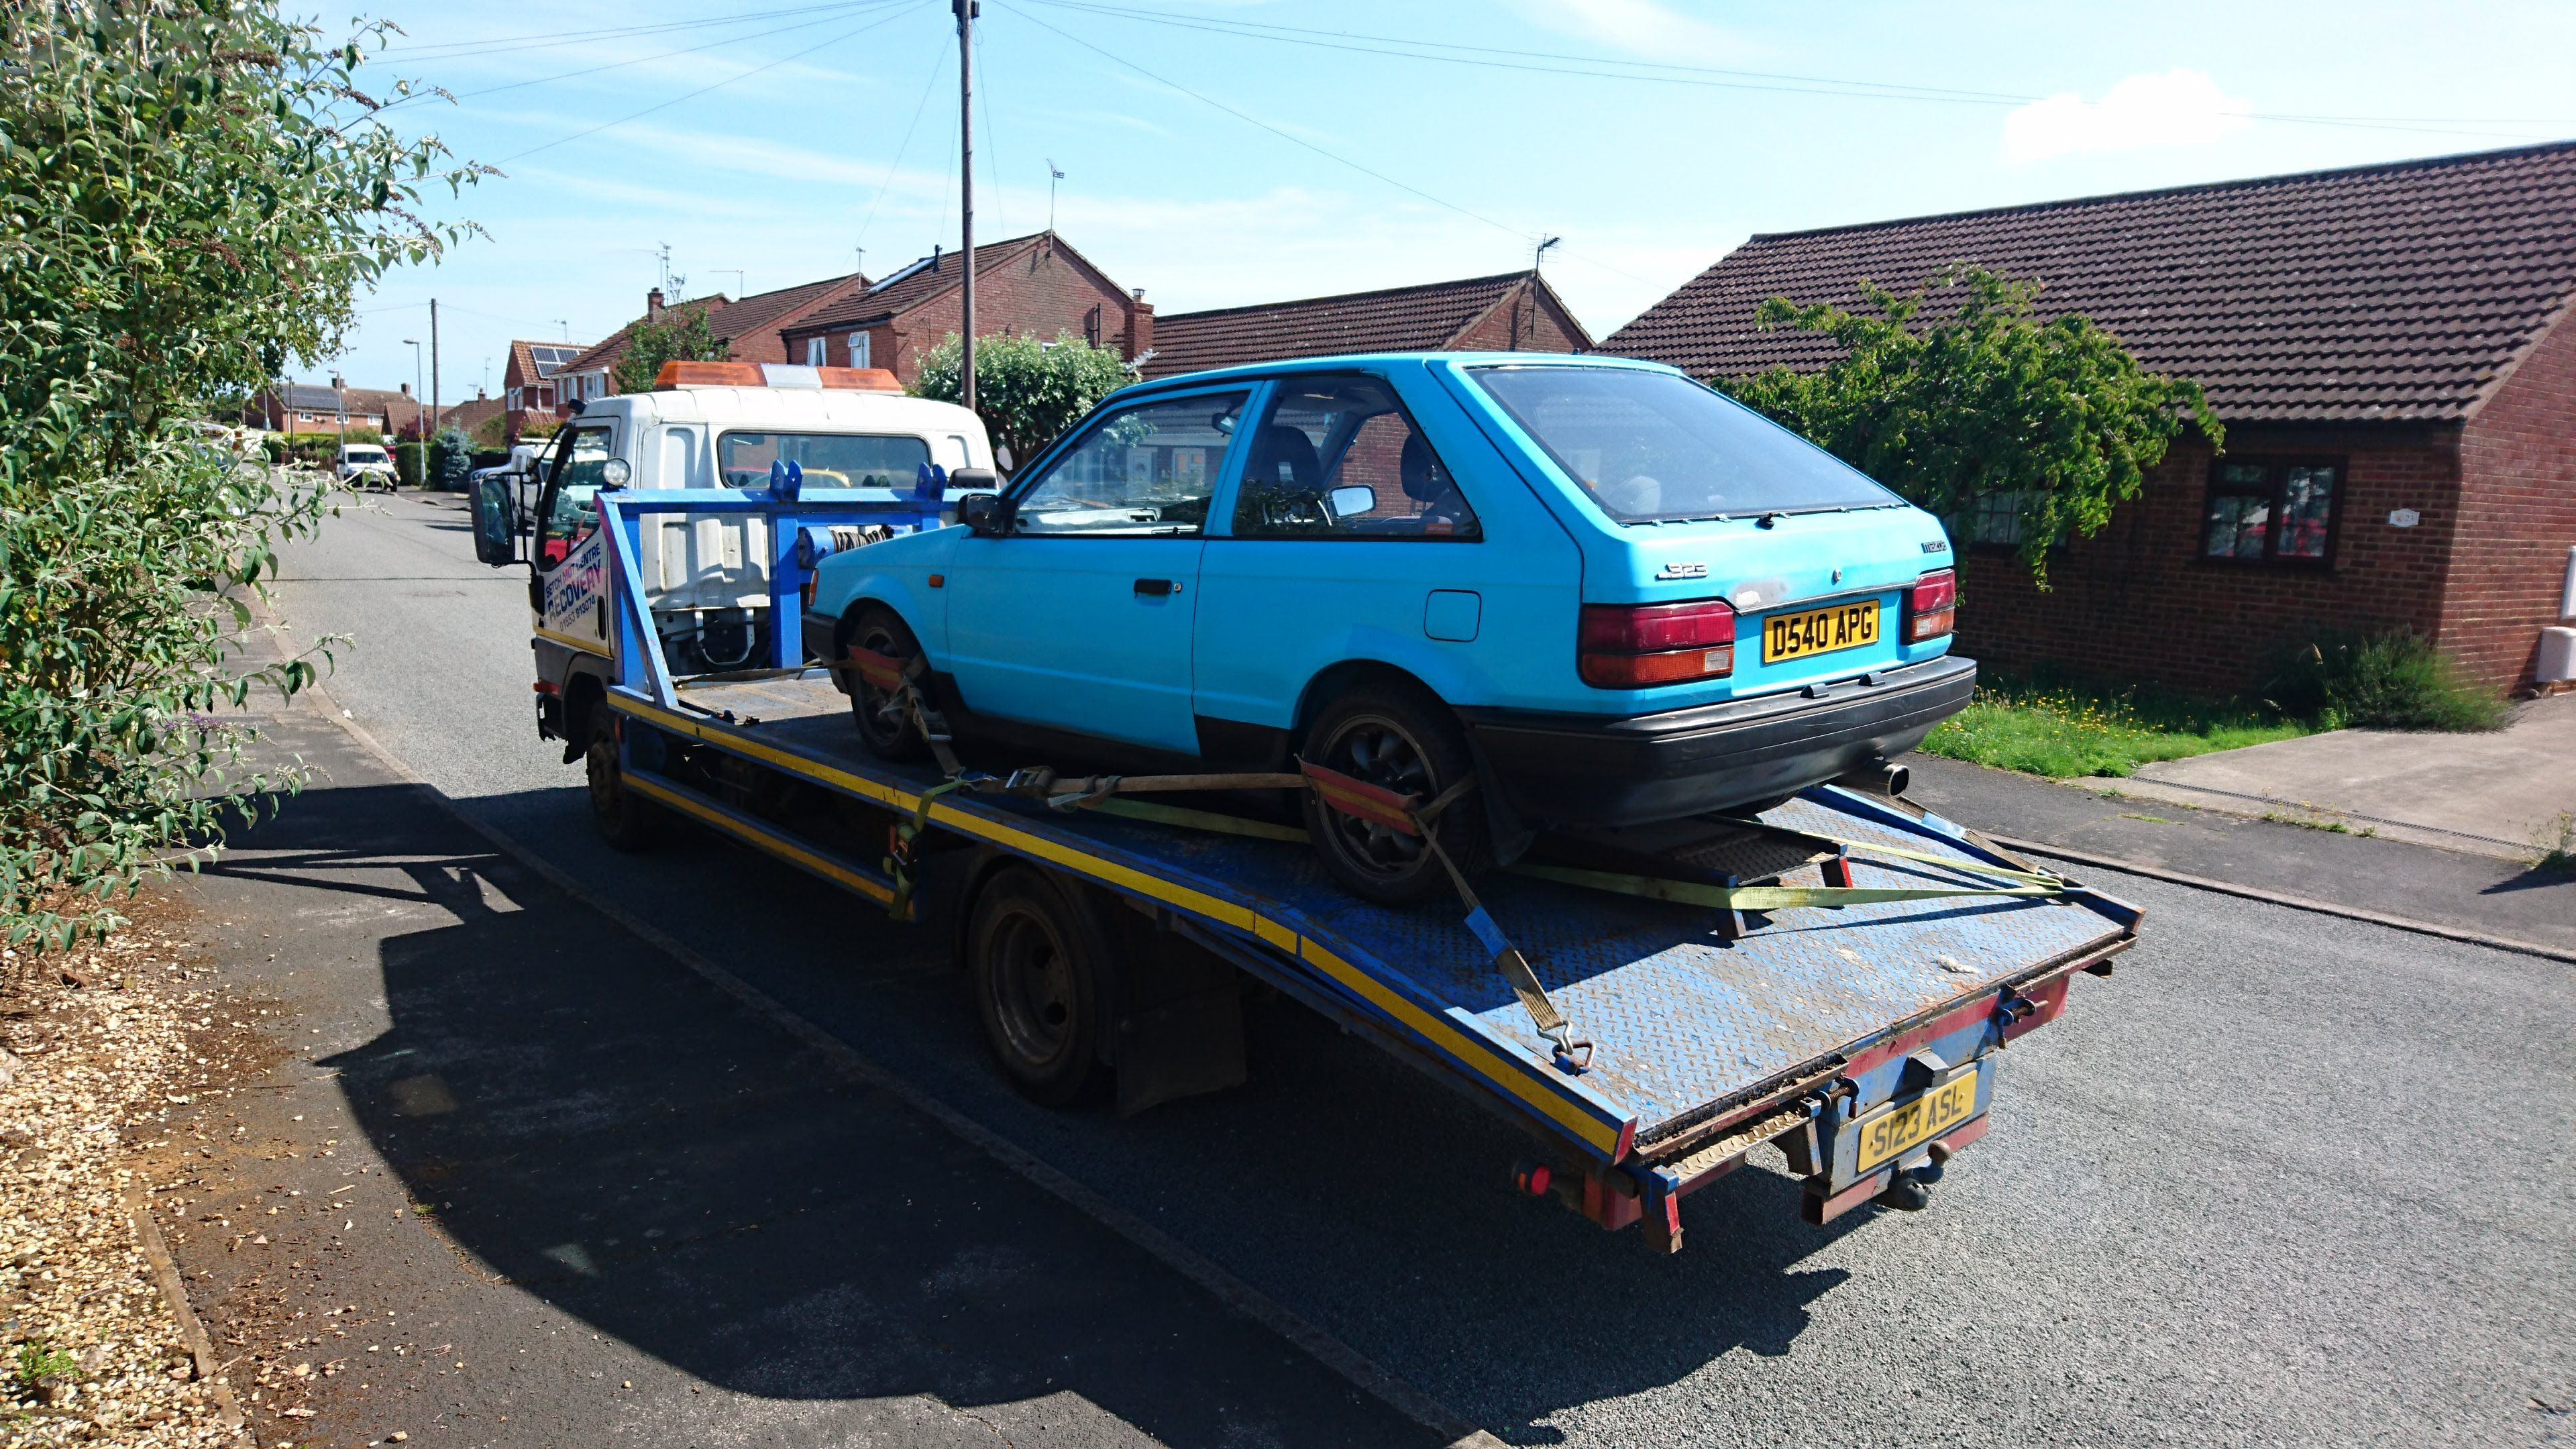 Mazda 323 GTX loaded onto a recovery truck